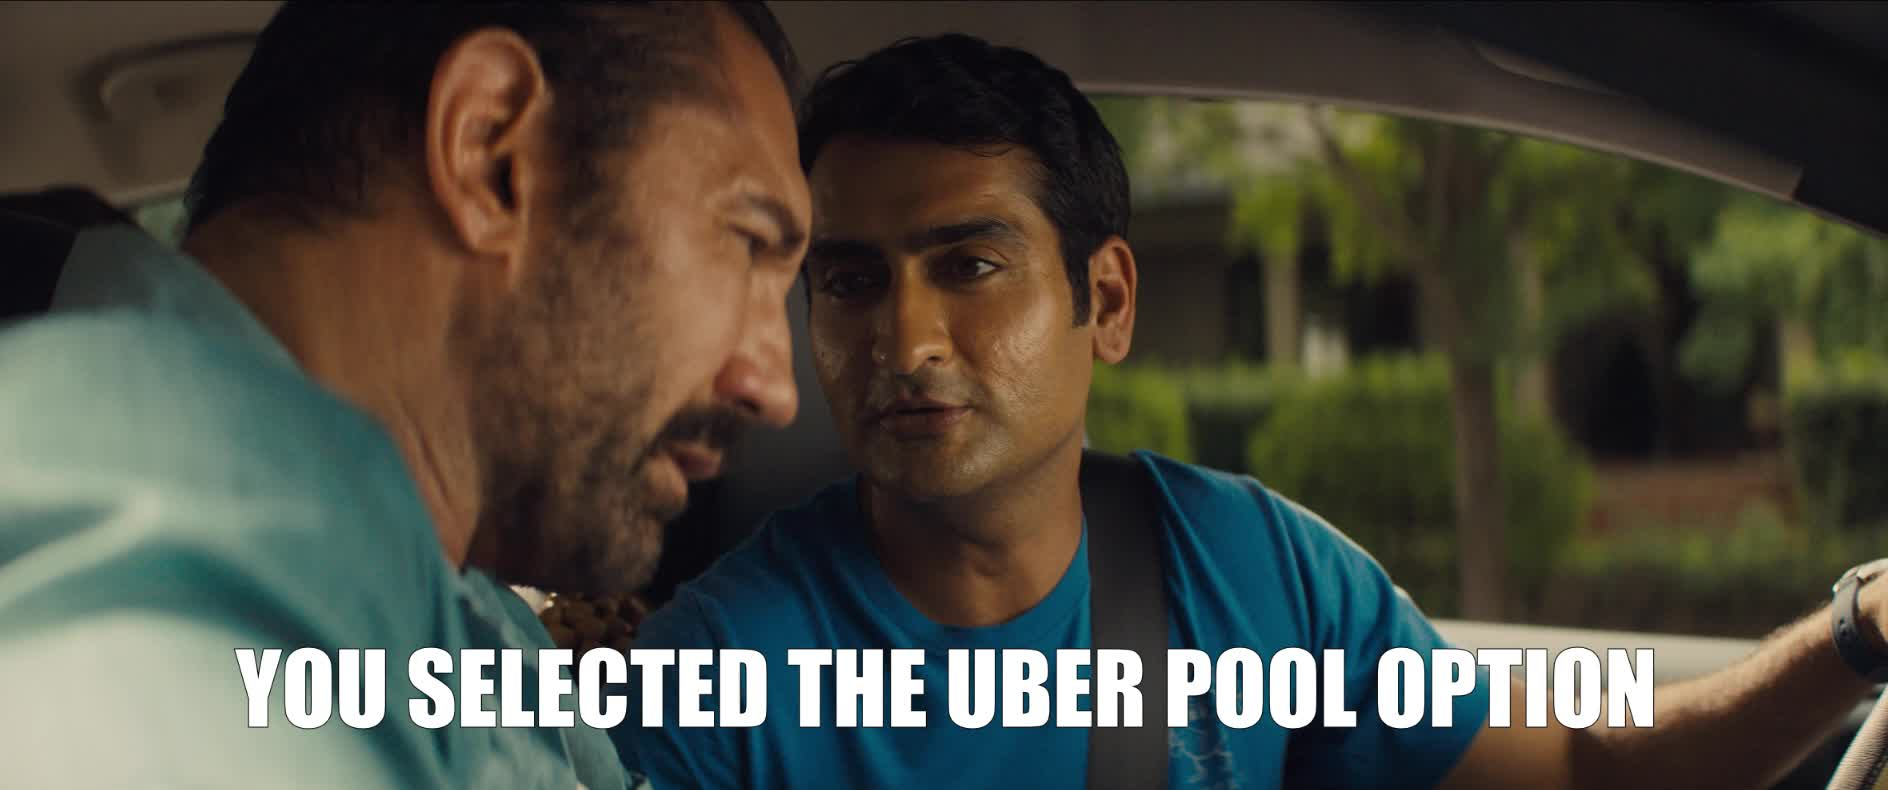 dave bautista, kumail nanjiani, stuber, stuber movie, uber, Uber Pool Option GIFs